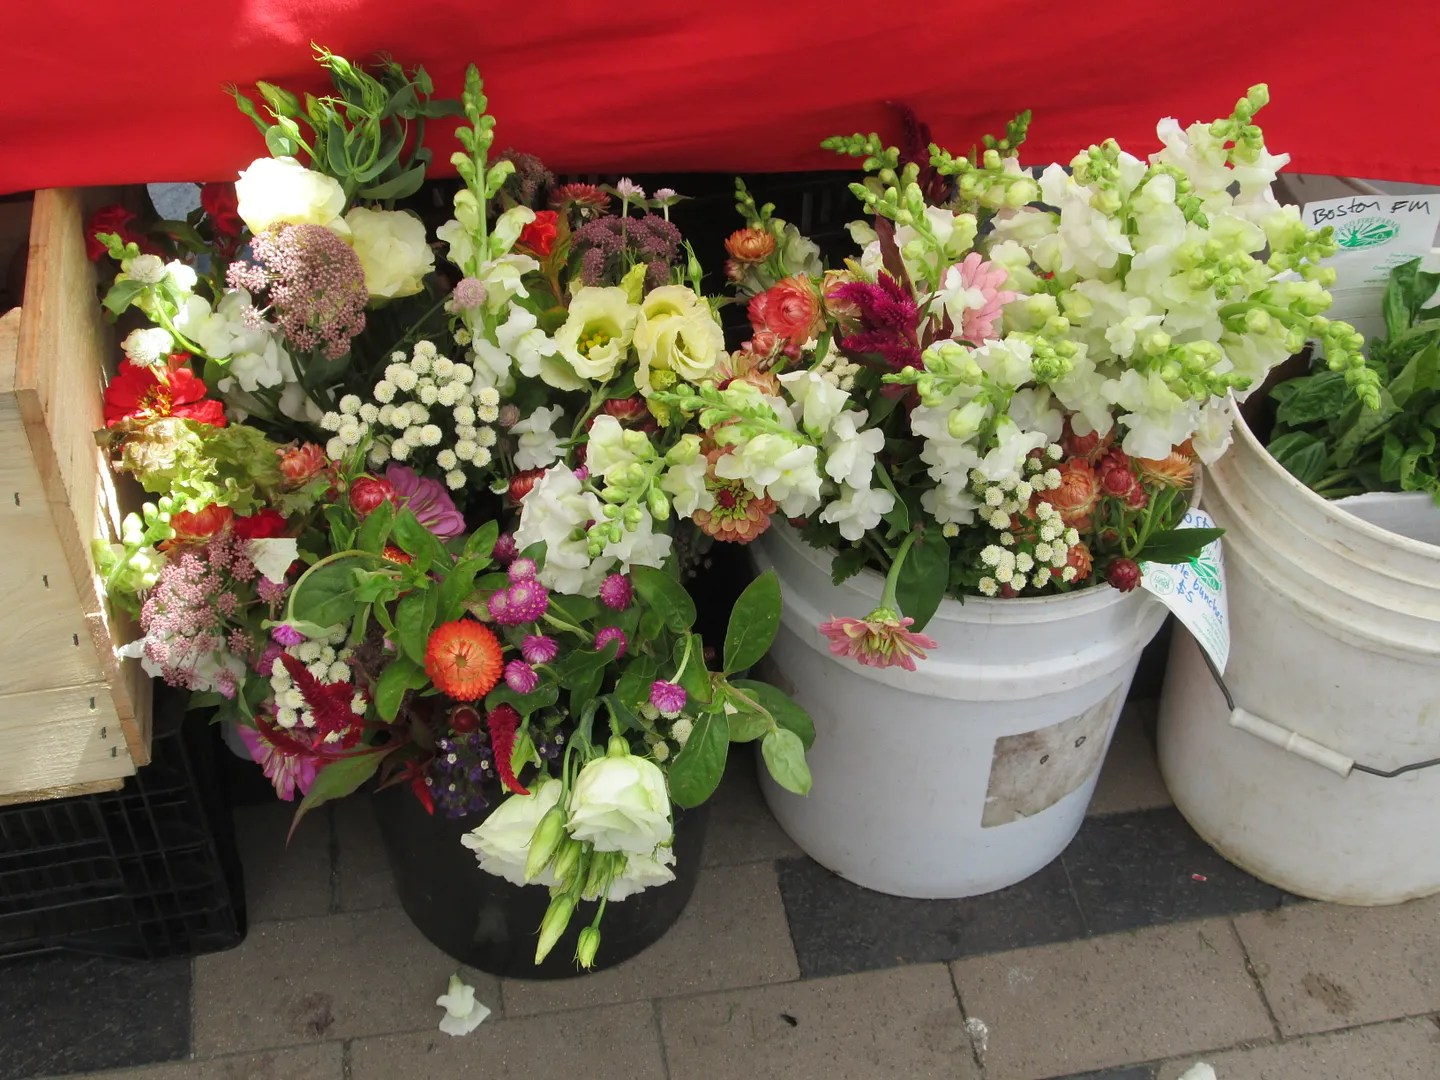 buckets of multicolored flowers at the farmers market